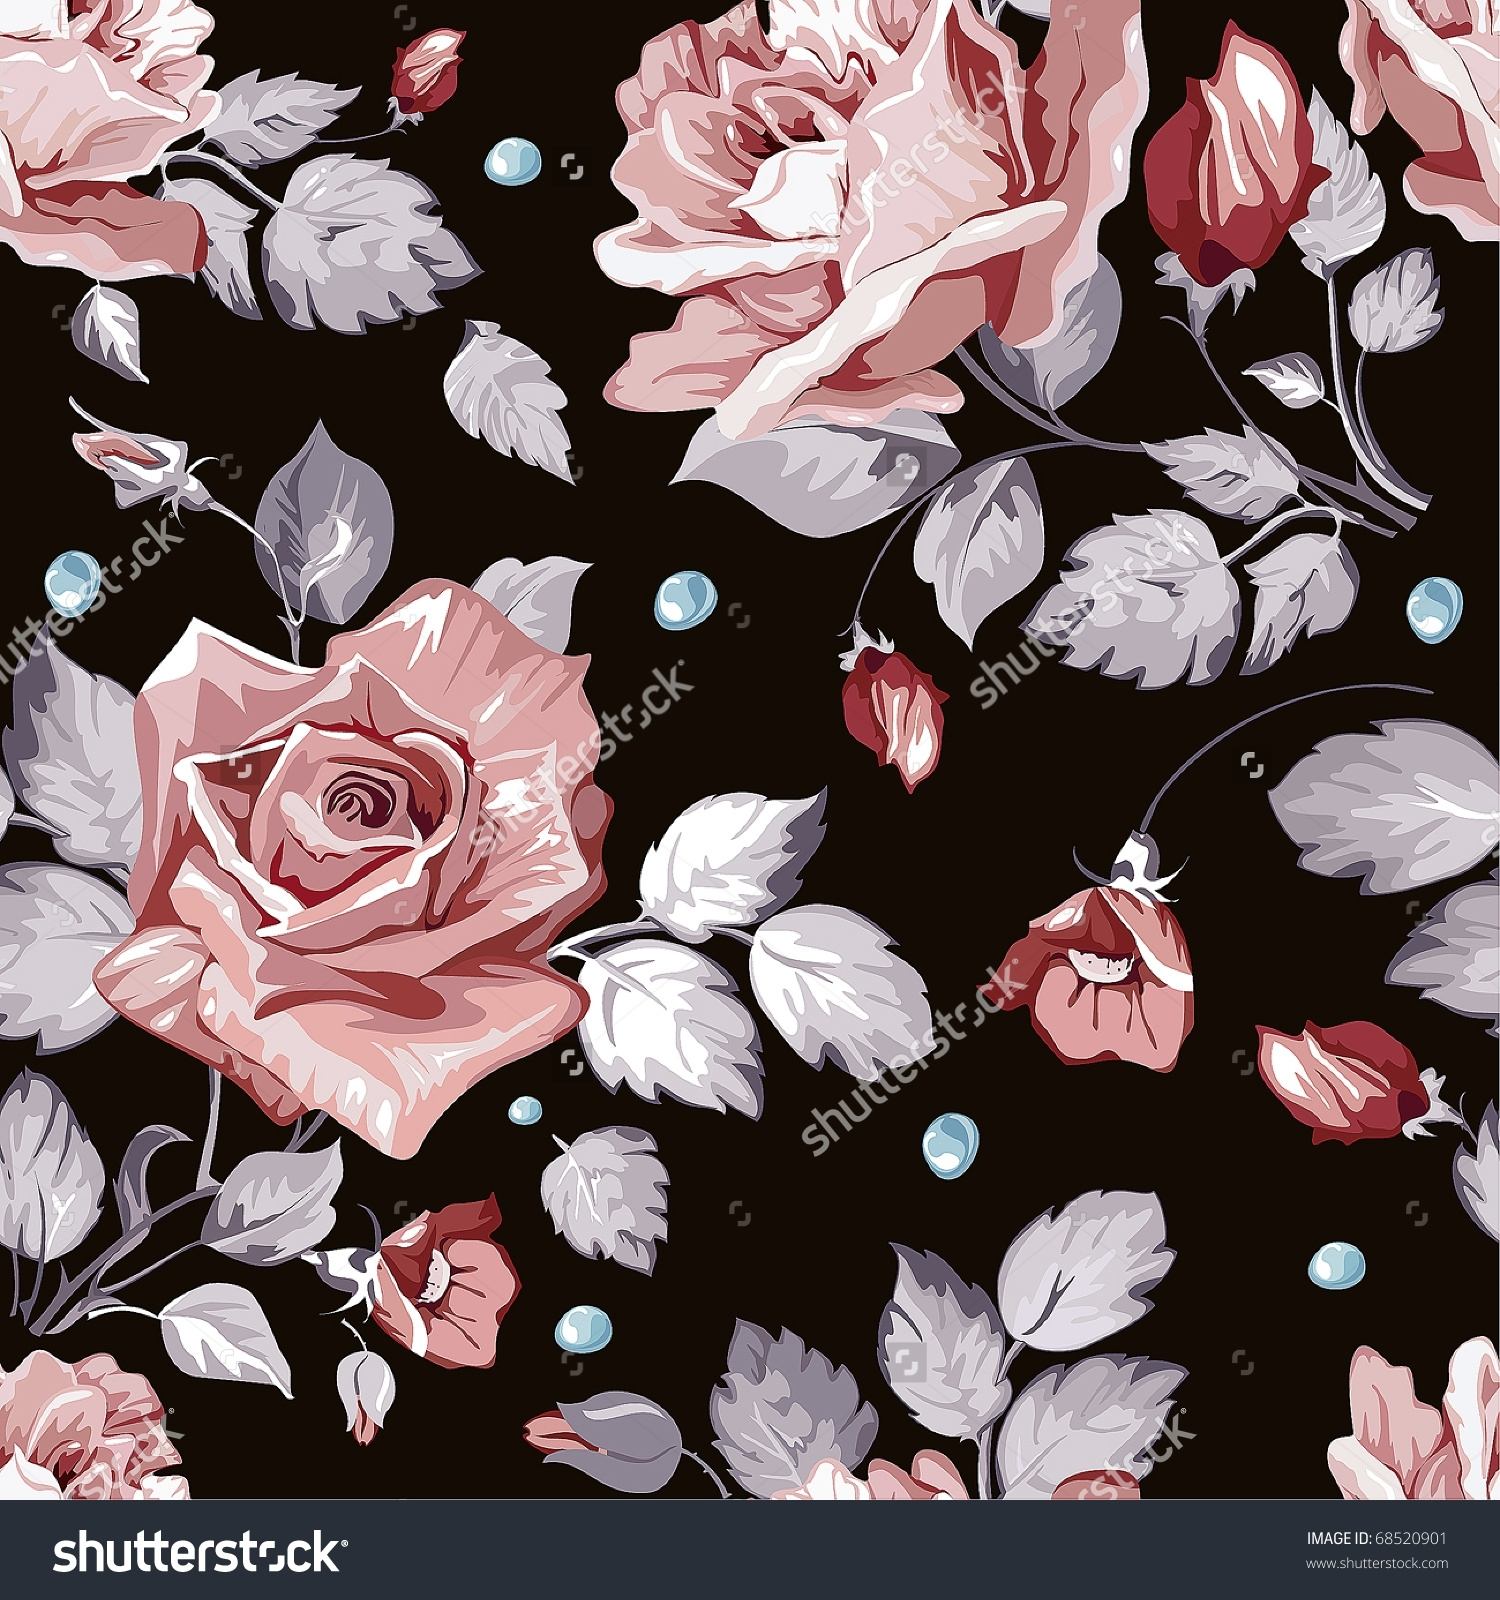 10 top black and pink flower wallpaper full hd 1080p for pc background title black wallpaper with pink flowers classy pink and black flower dimension 1500 x 1600 file type jpgjpeg mightylinksfo